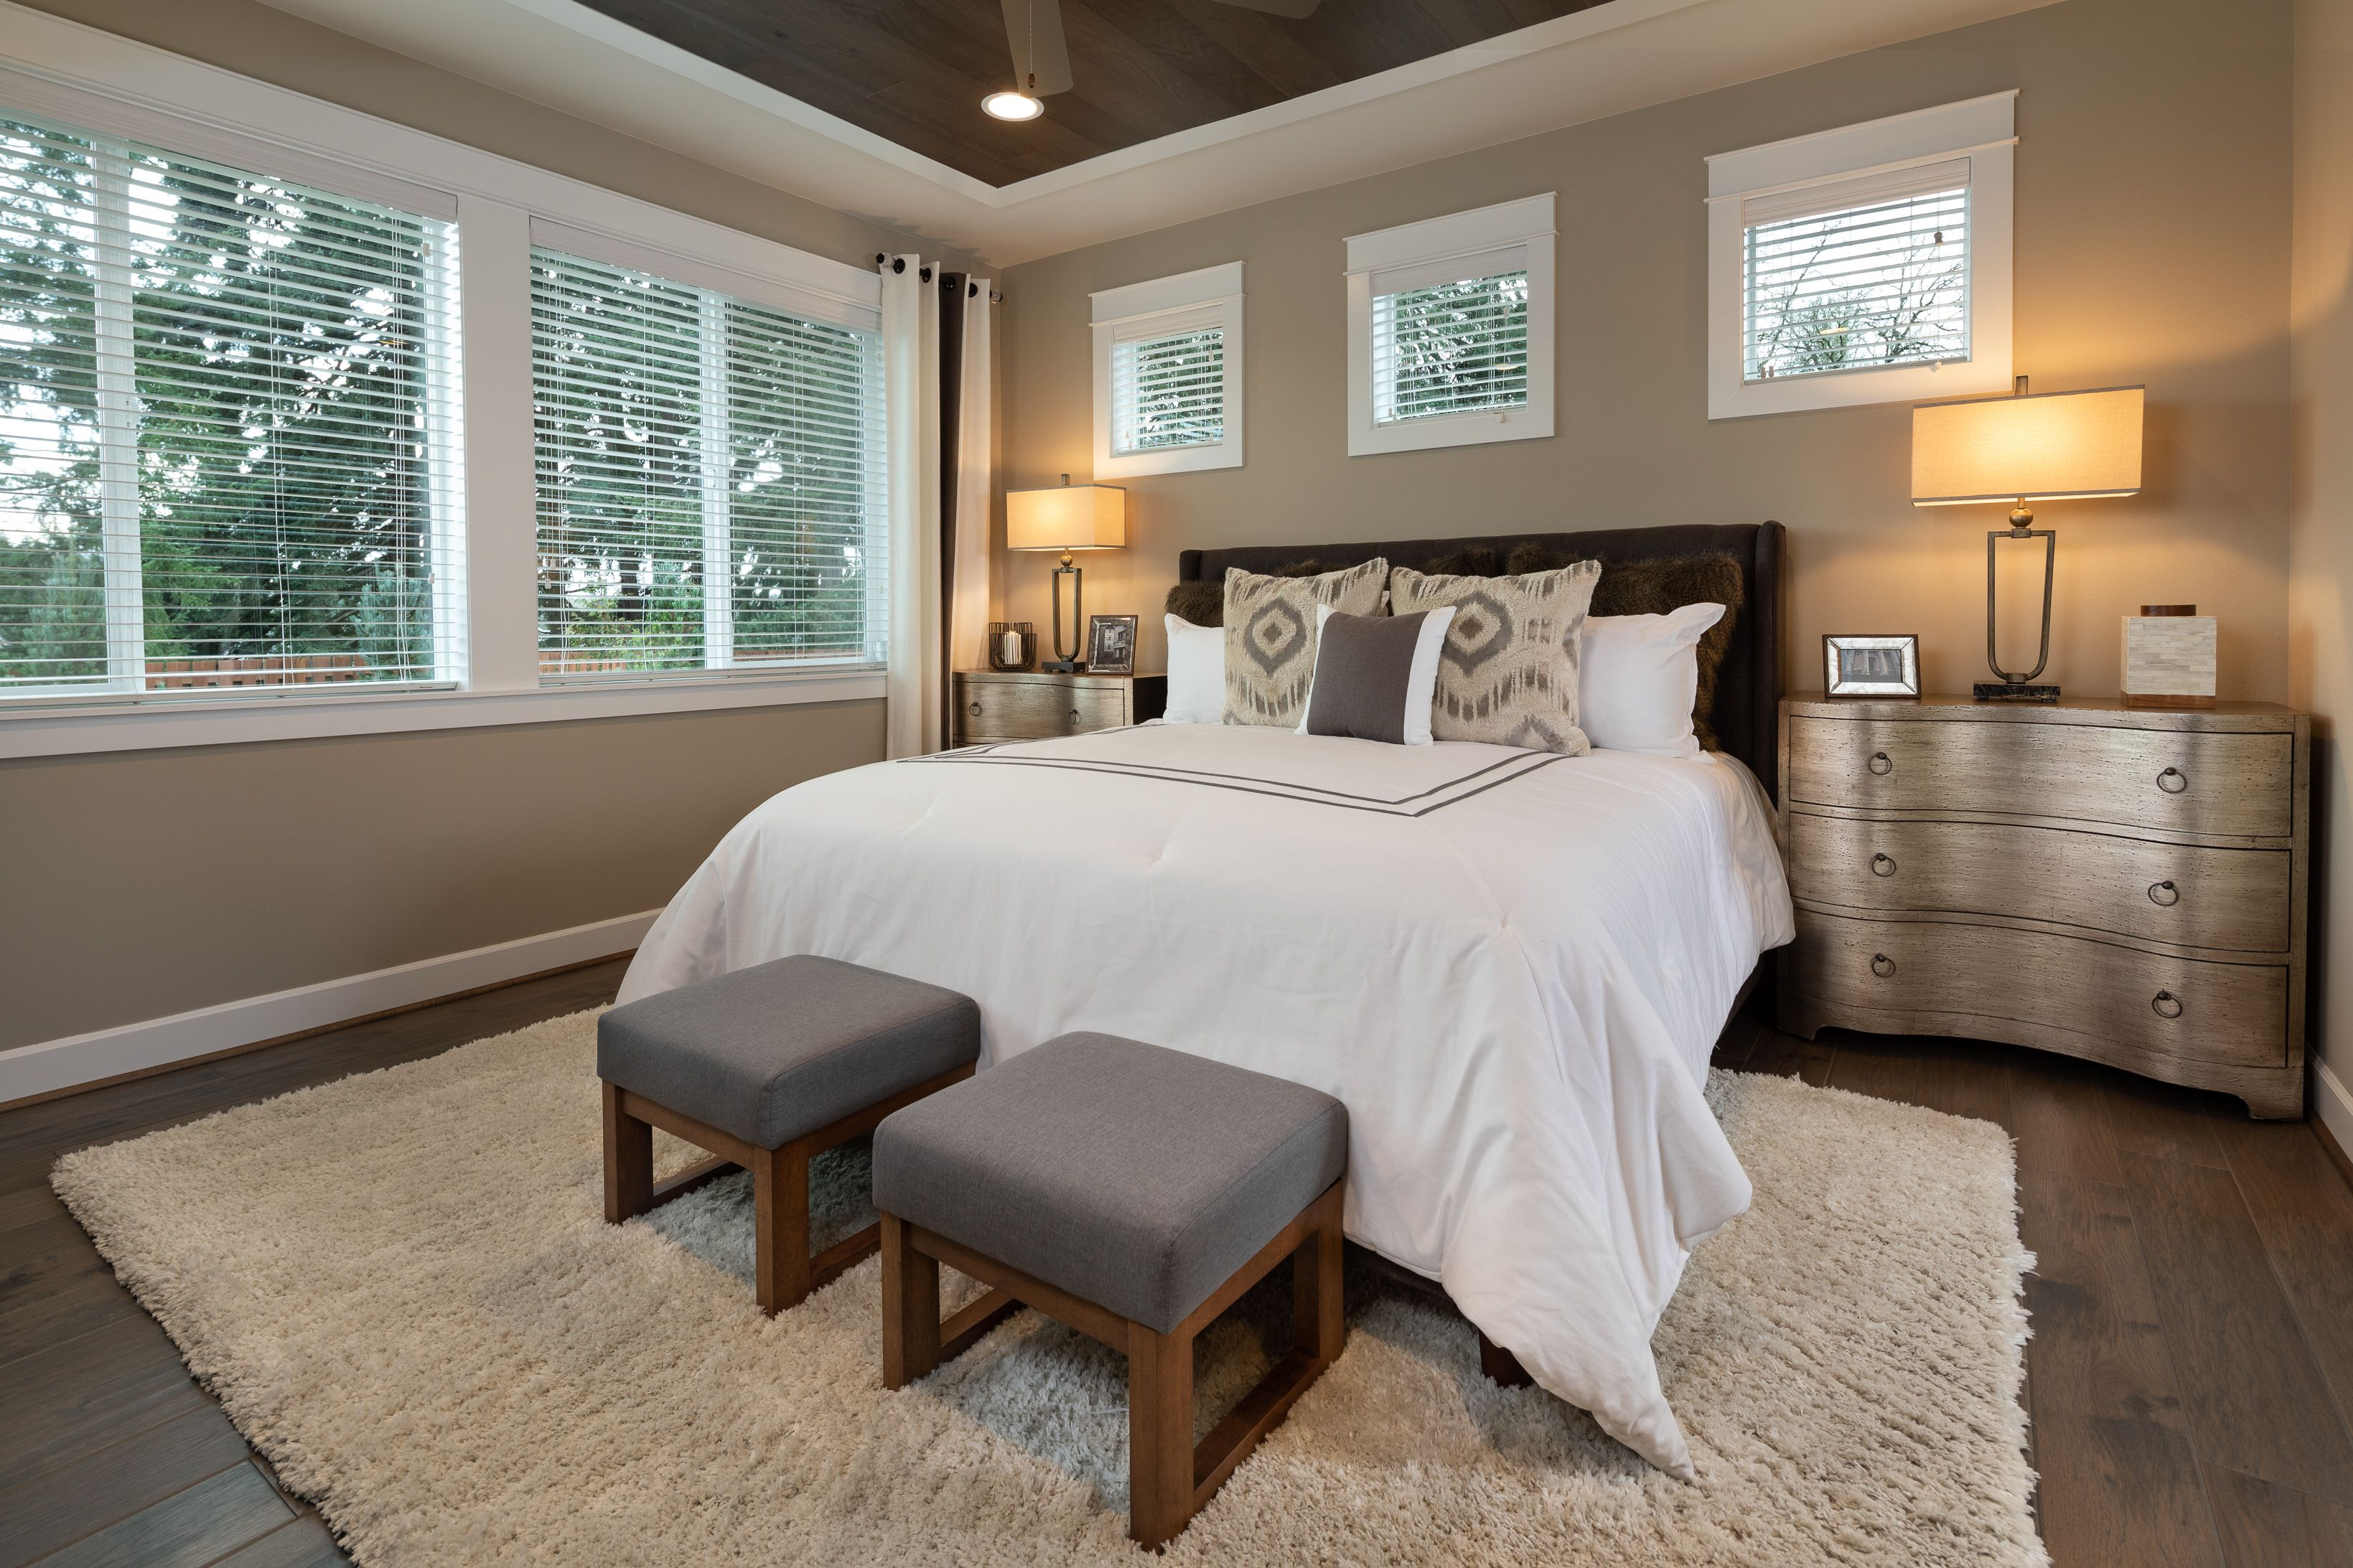 Bedroom featured in The Willow By Taylor Morrison in Olympia, WA